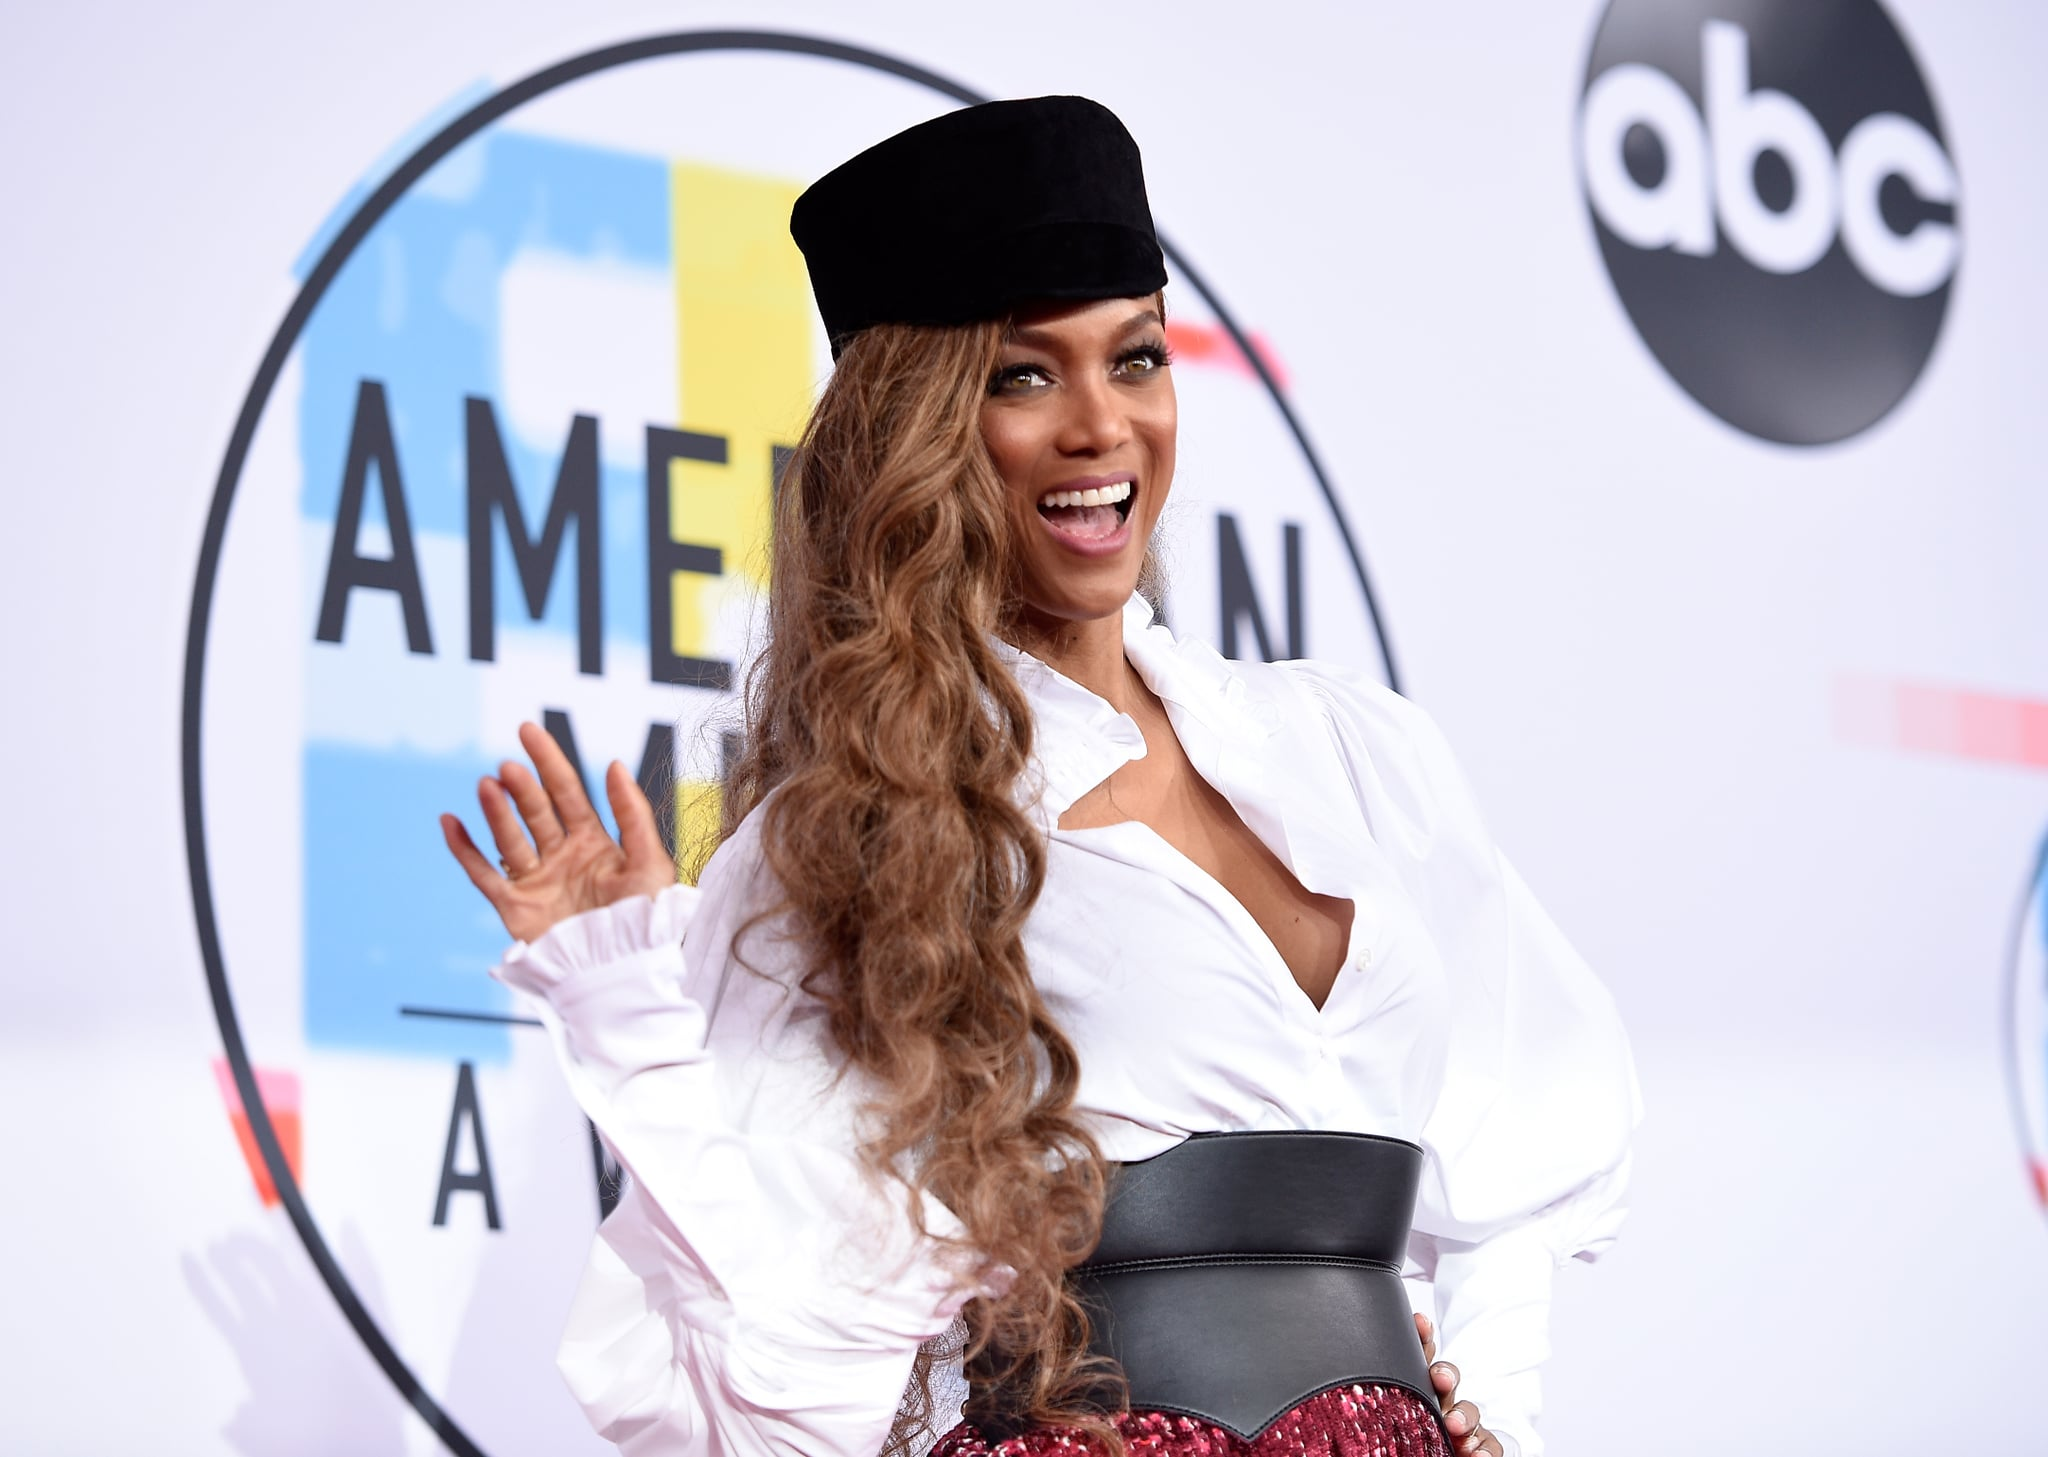 LOS ANGELES, CA - OCTOBER 09:  Tyra Banks attends the 2018 American Music Awards at Microsoft Theater on October 9, 2018 in Los Angeles, California.  (Photo by Kevork Djansezian/Getty Images For dcp)